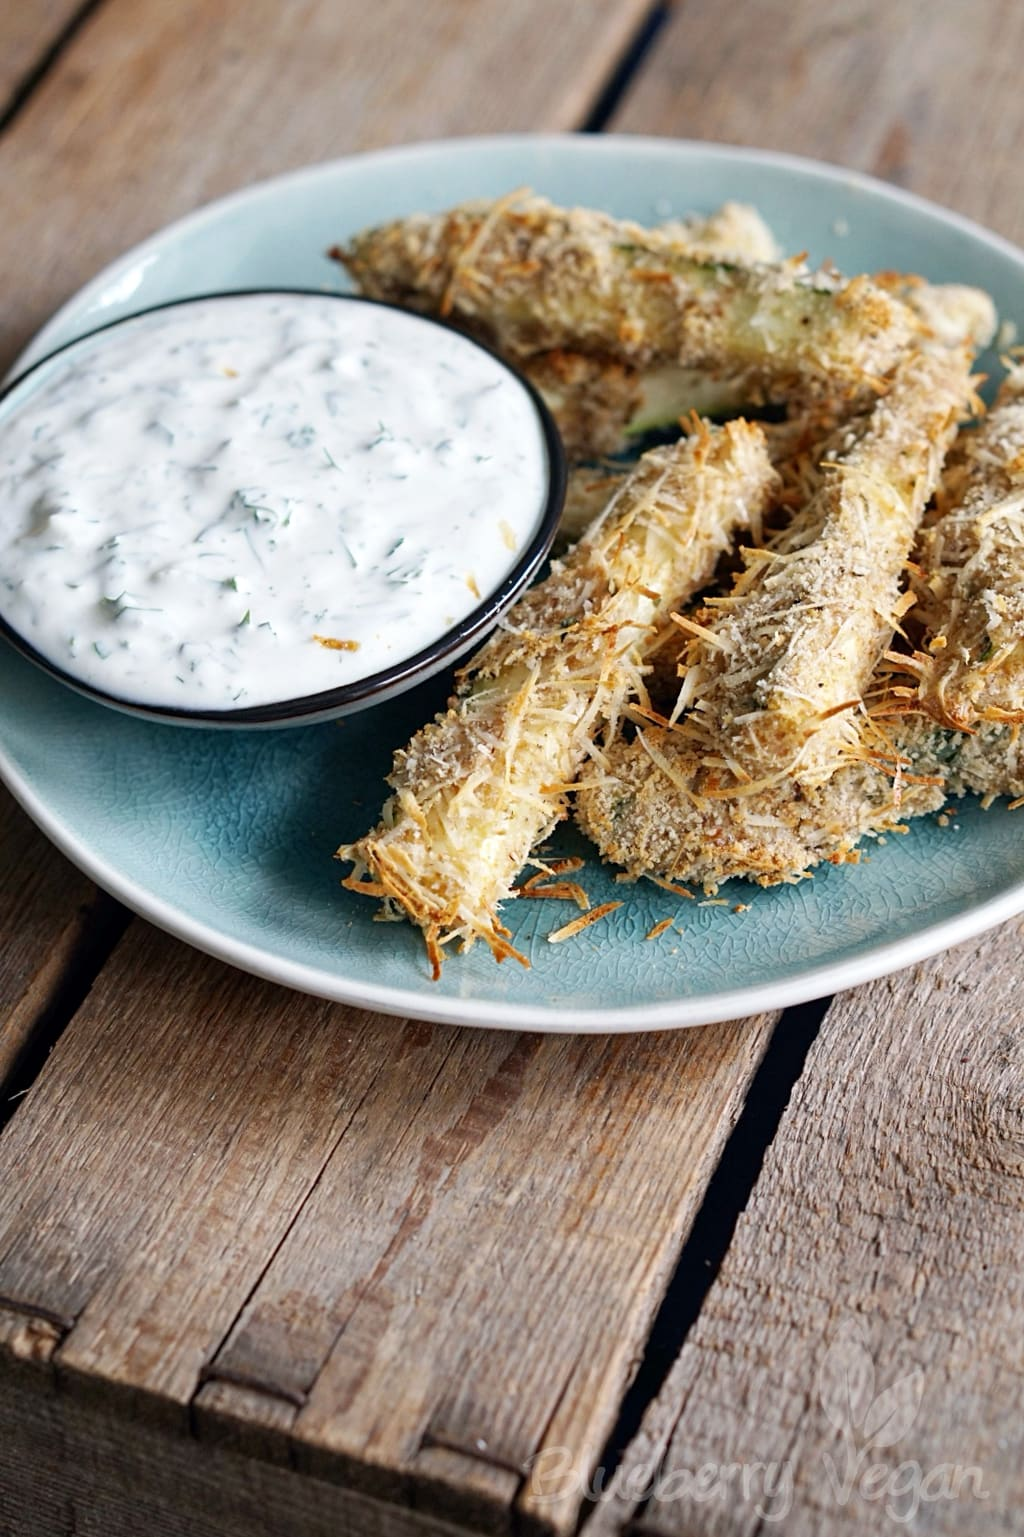 Crispy Zucchini Fries with Herbal Dip